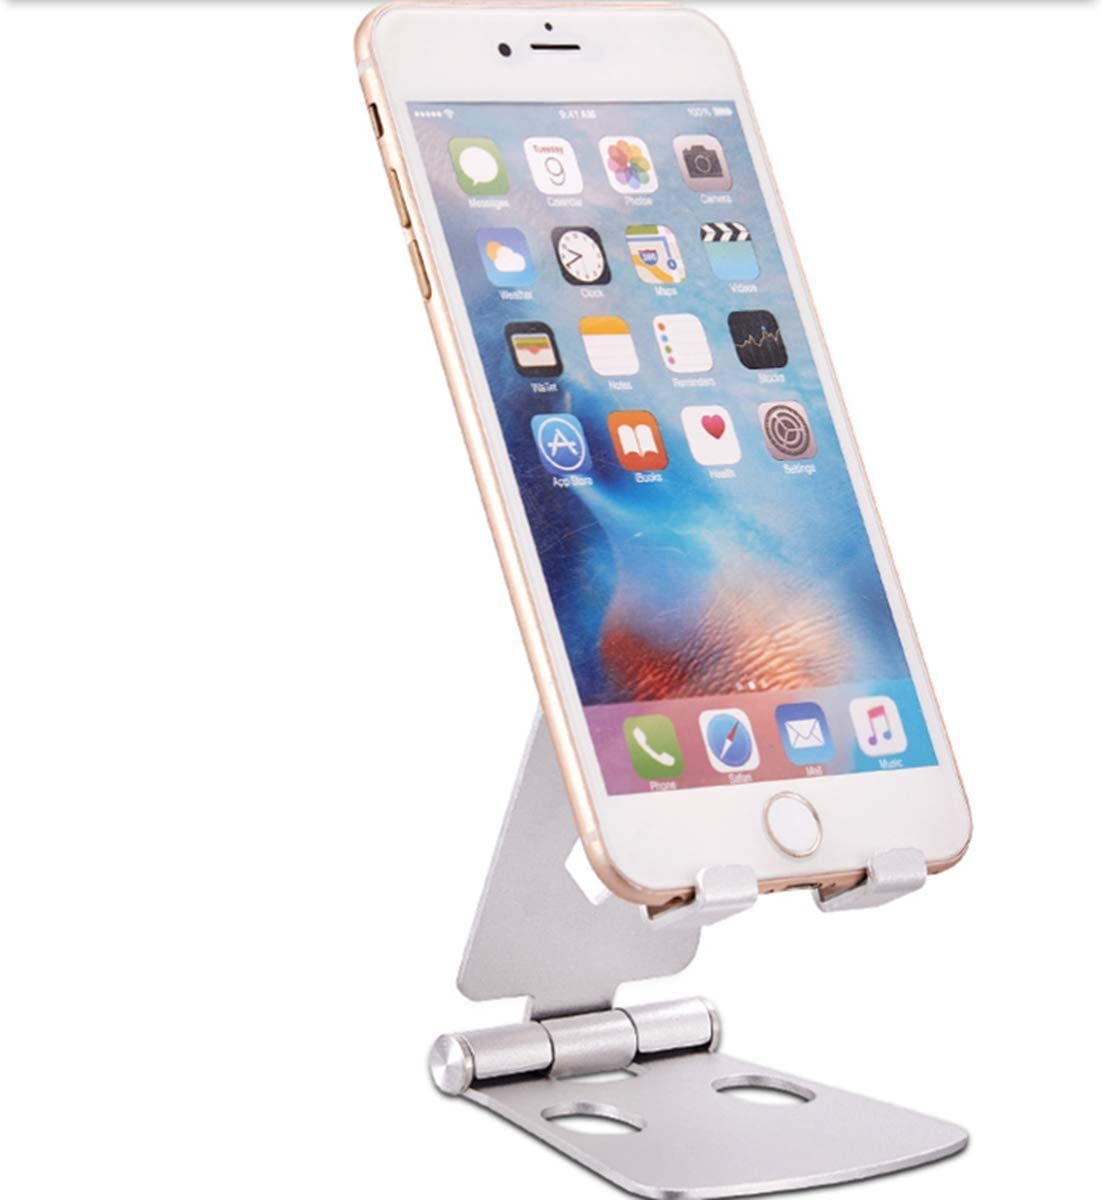 Cell Phone Holder Adjustable Cell Phone Stands Tablet Stand Solid Aluminum Stand Charging Dock for All Smart Phones and Tablets Desk Phone Accessories Rose Gold